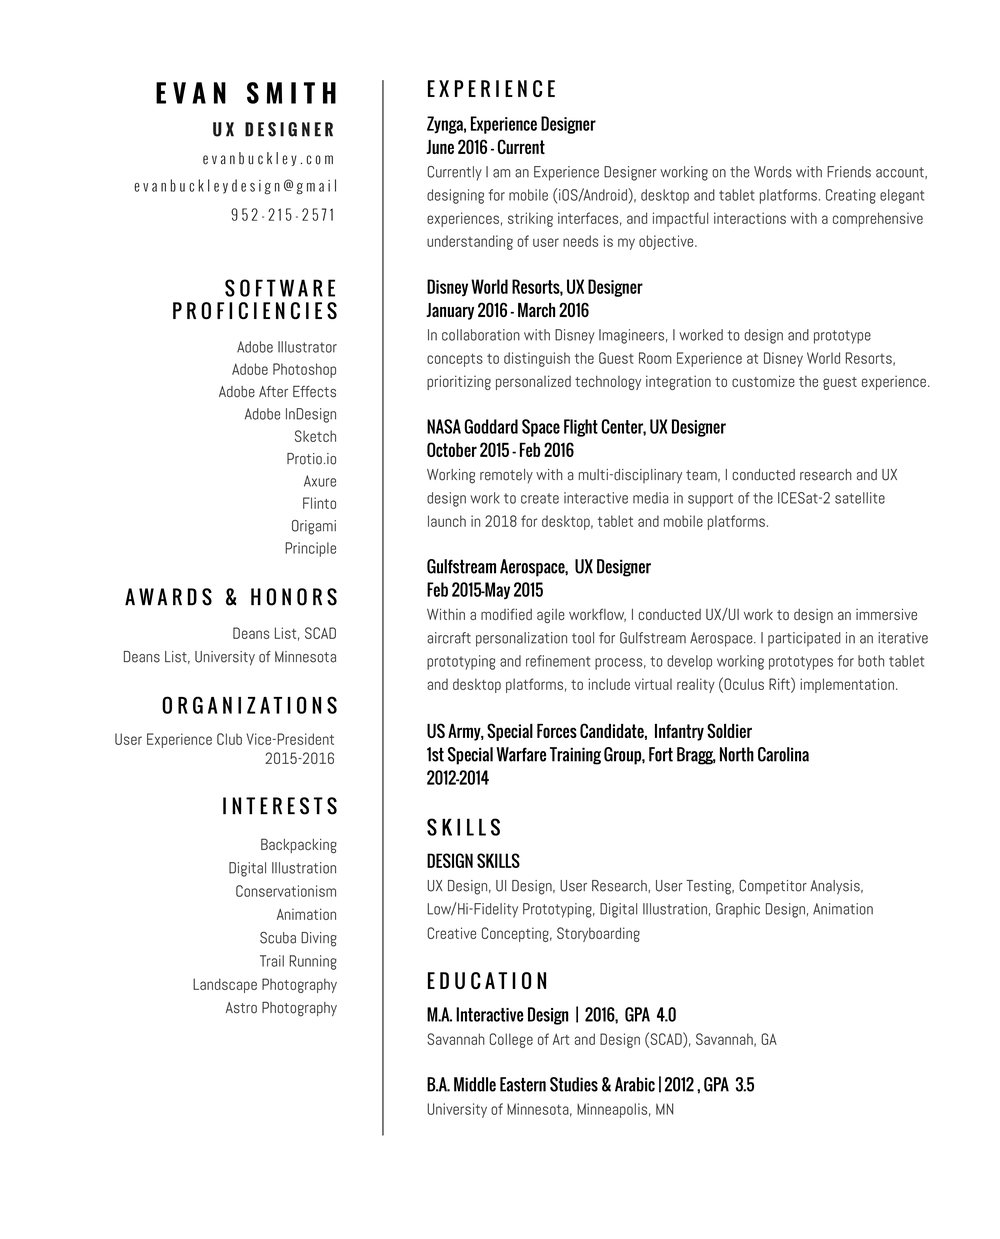 evan_smith_ux_applicant_resume_02-01.png